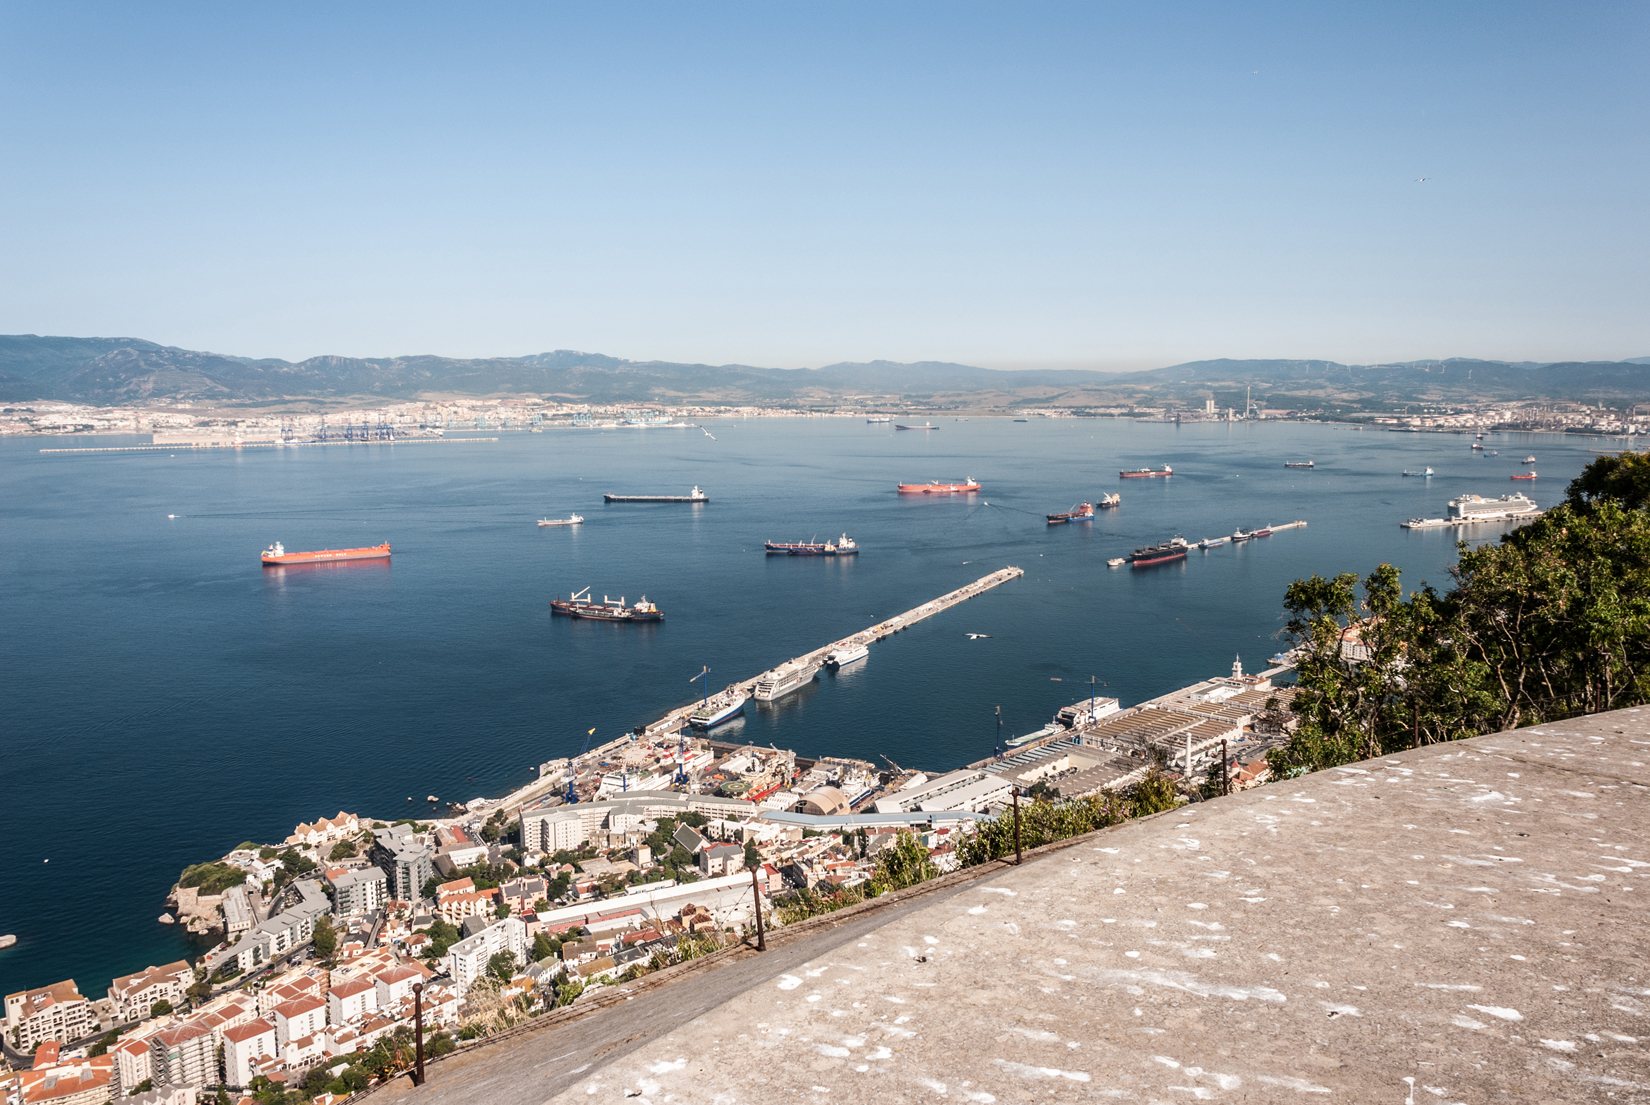 The Bay of Gibraltar and the harbour